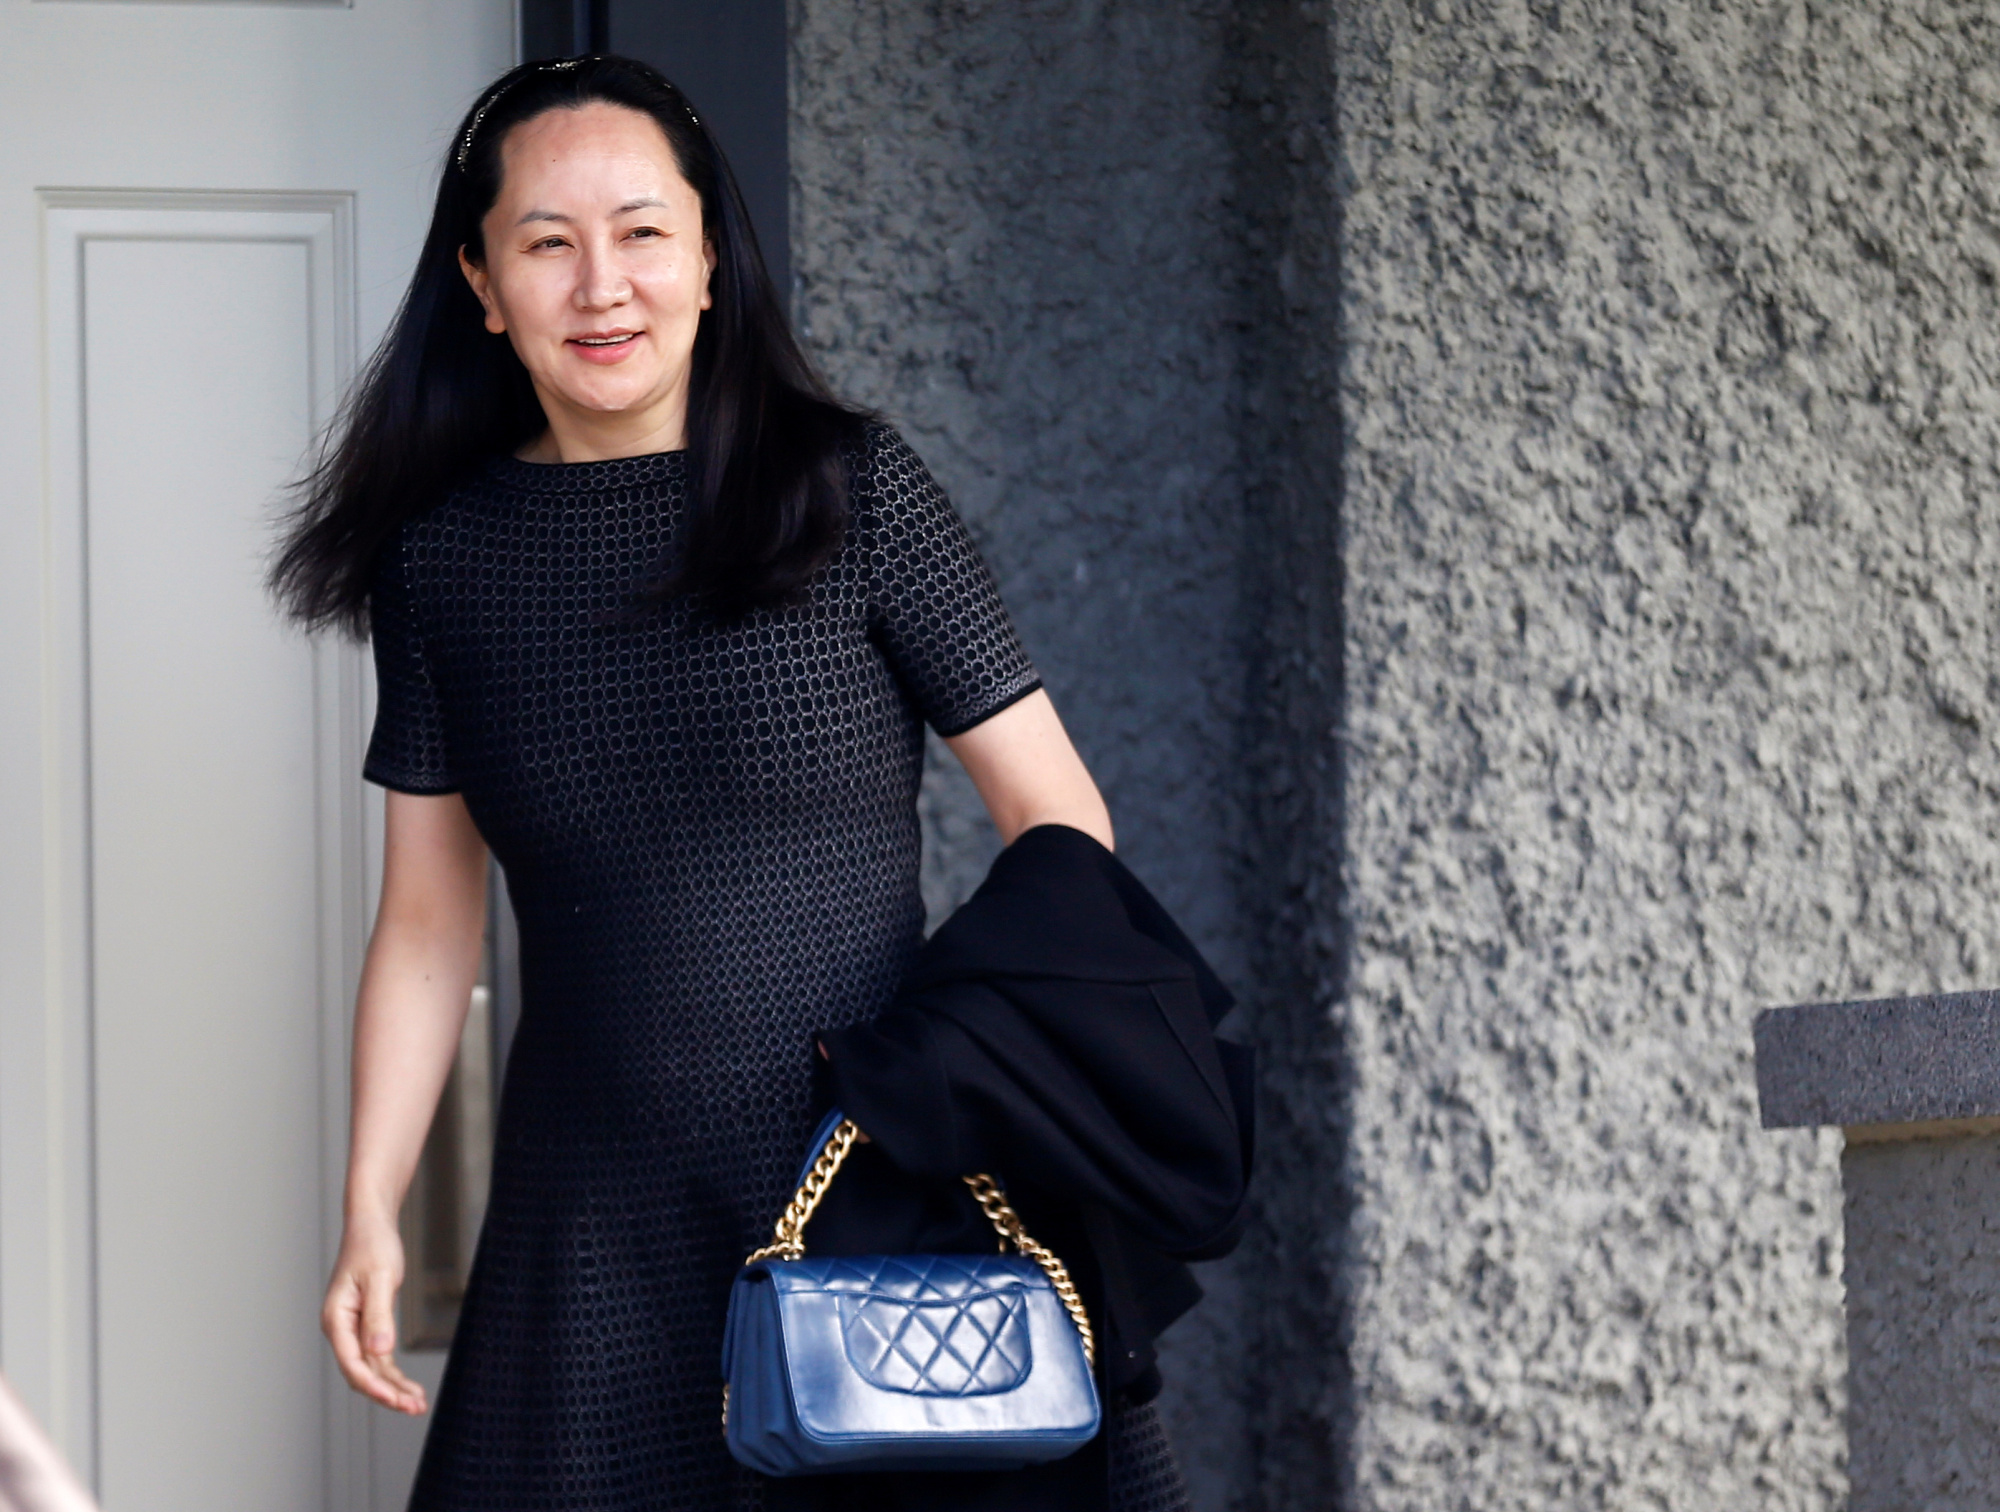 Huawei Technologies Co. executive Meng Wanzhou leaves her family home in Vancouver, British Columbia, on Wednesday. | REUTERS